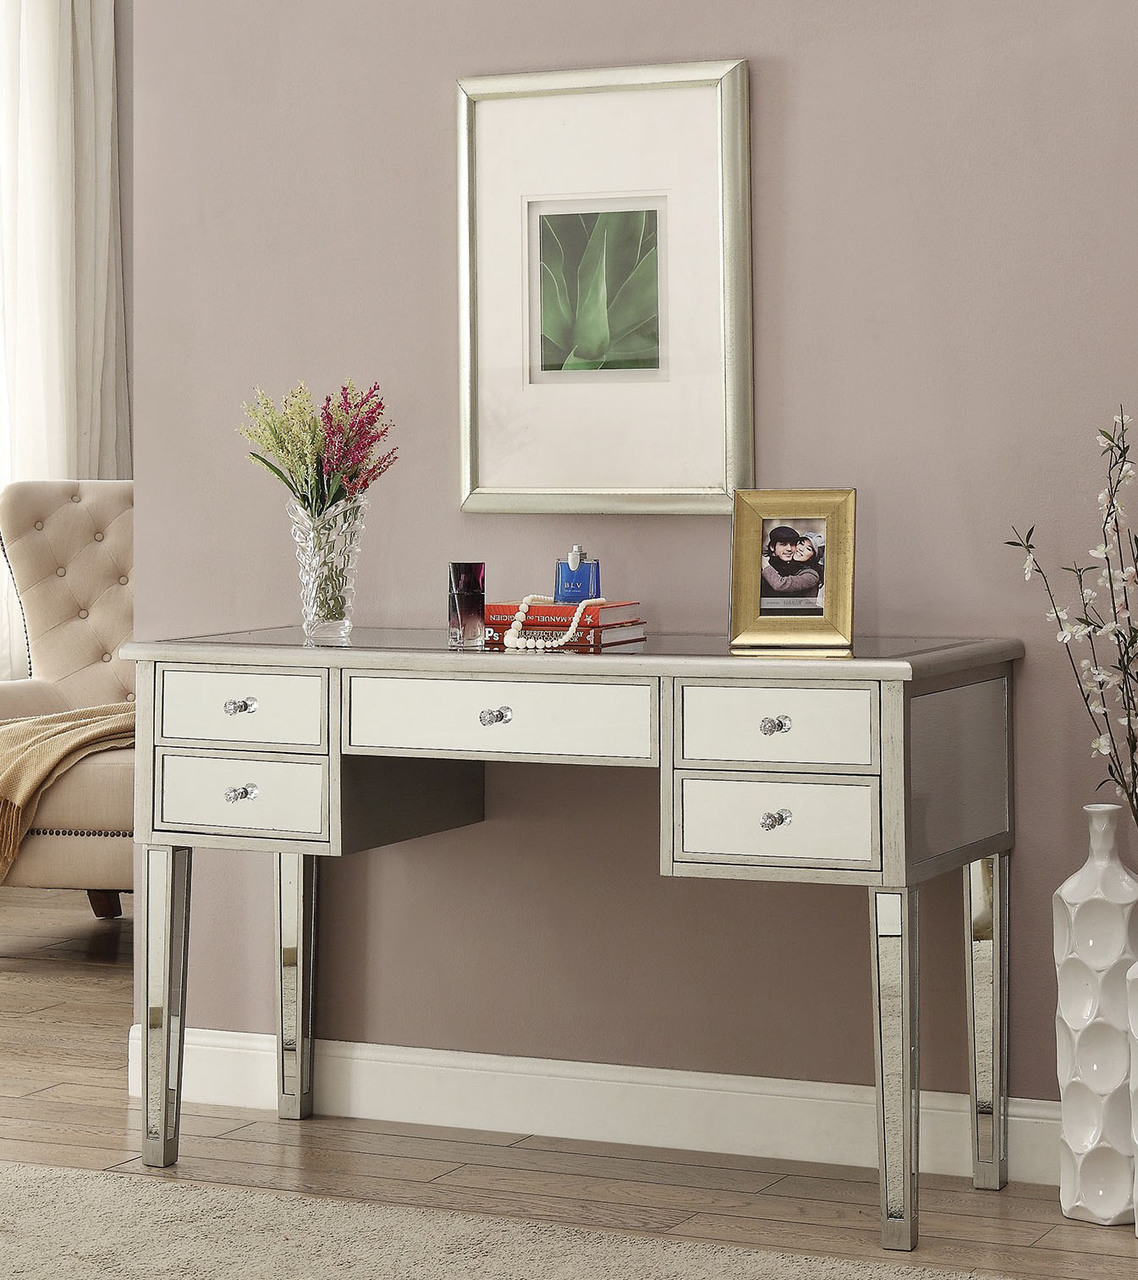 Image of: Mirrored Vanity Table Cost